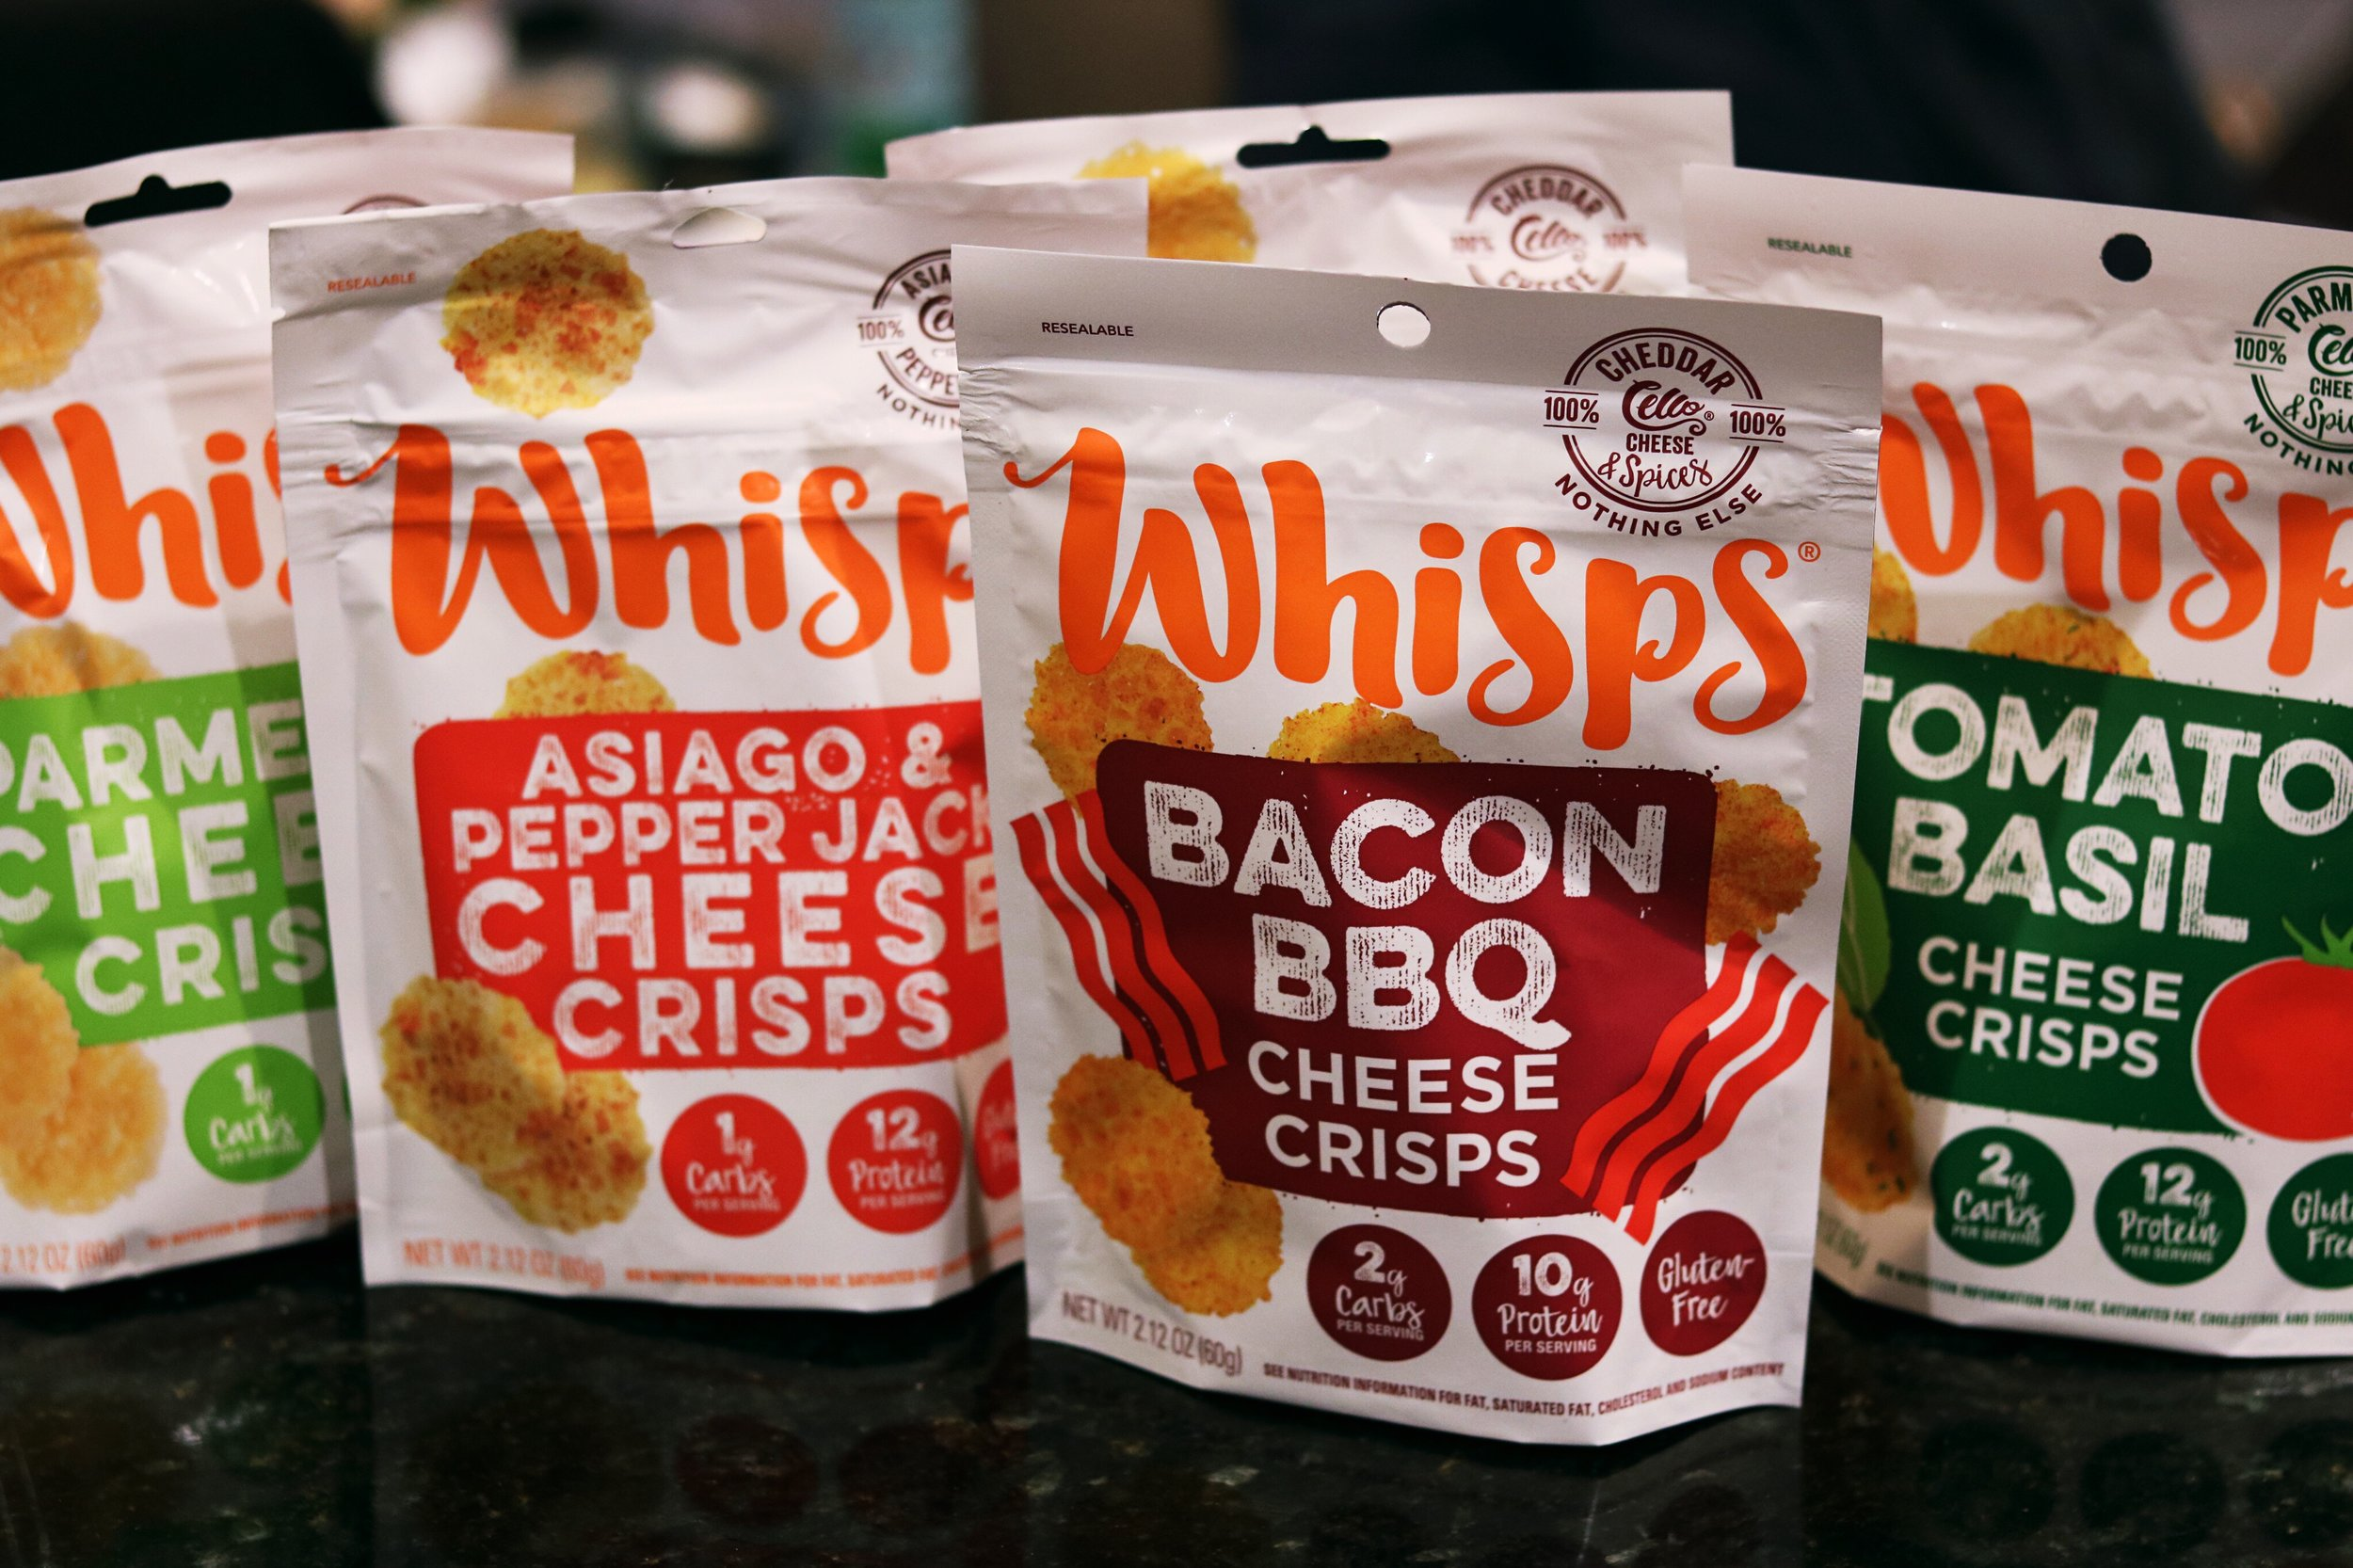 Whisps Cheese Snacks